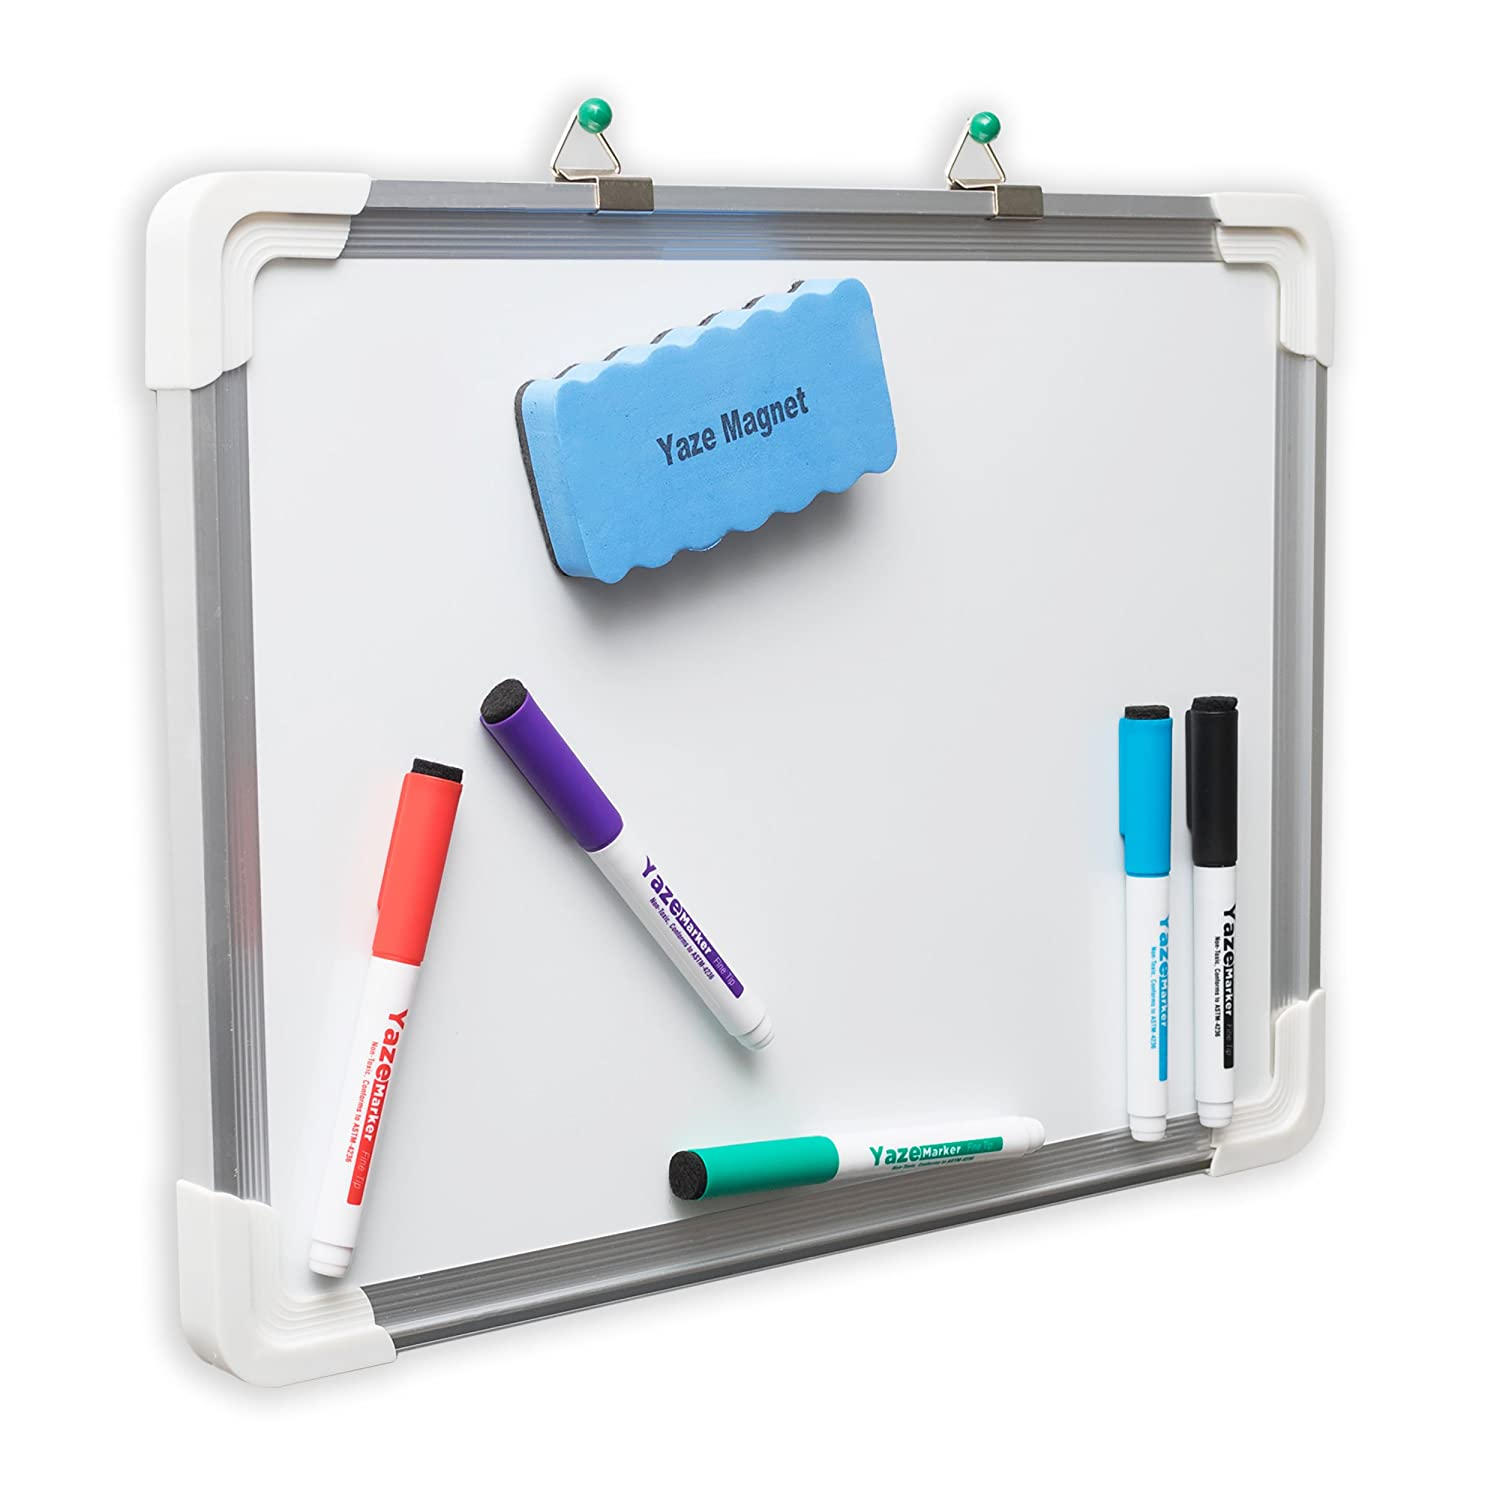 Dry Erase White Board: Hanging Writing, Drawing & Planning Small Whiteboard for Cubicle | 5 Magnetic Dry Erase Markers & Eraser | Easy to Clean Wall Whiteboard for Kids, Home, Office, School